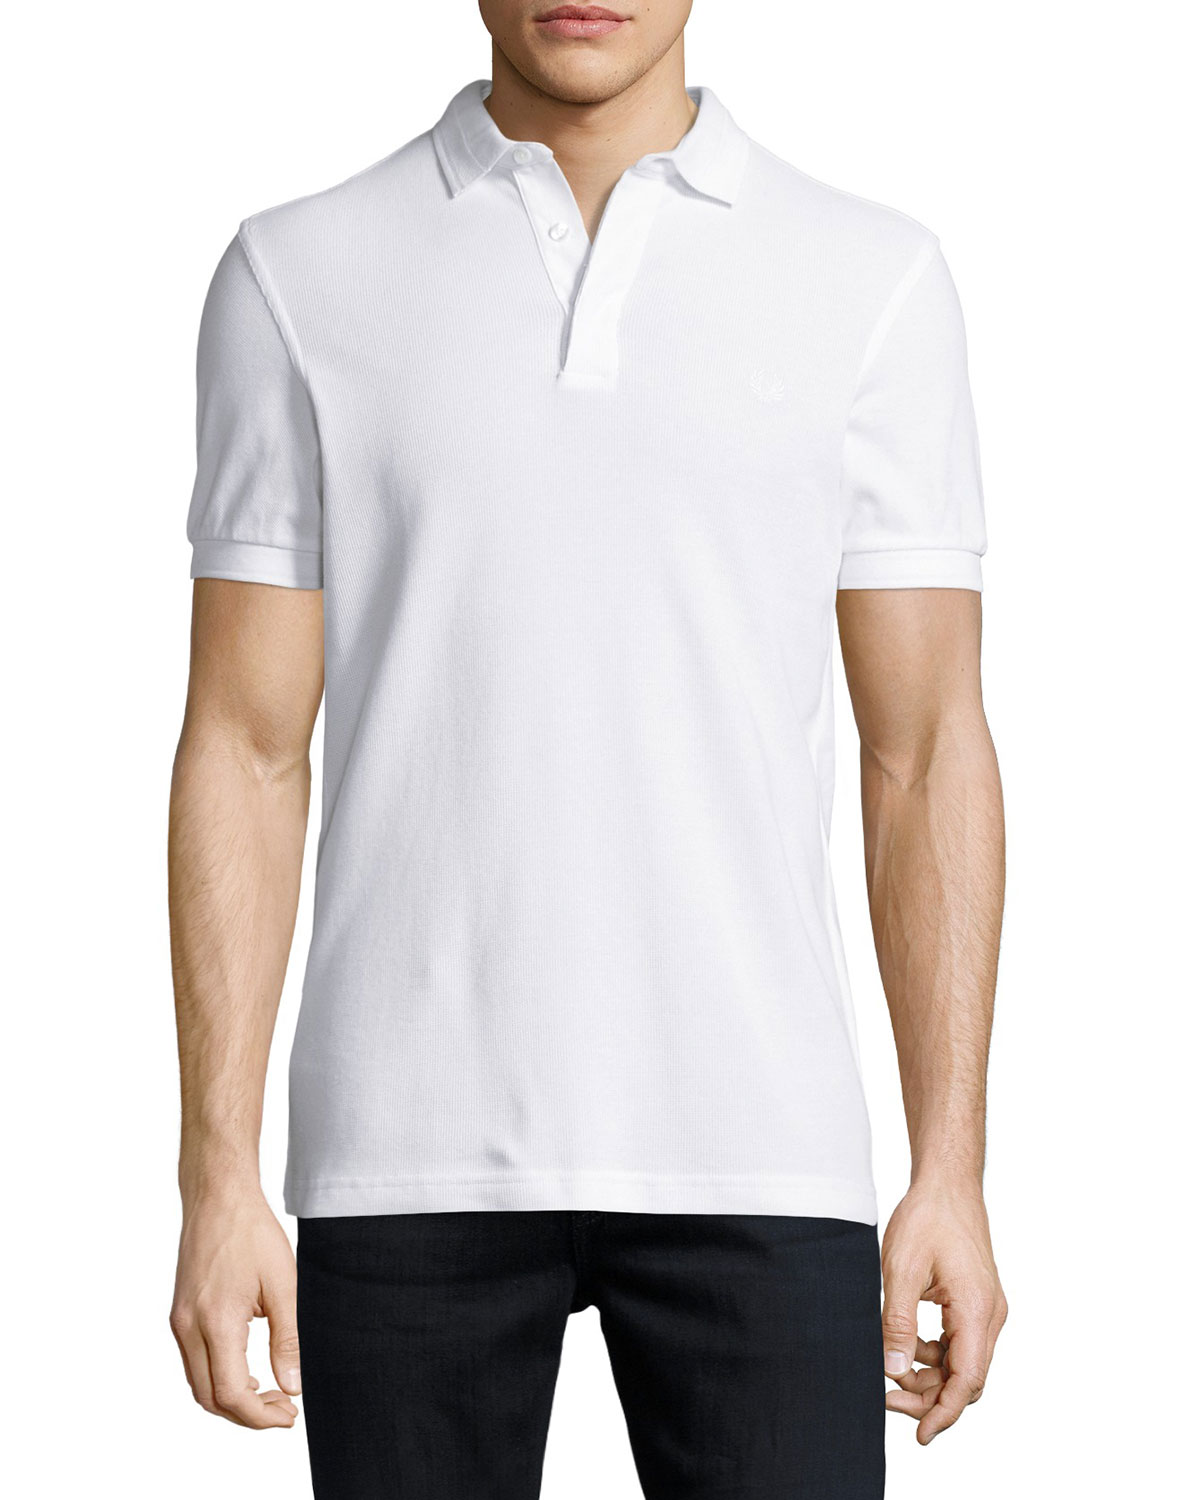 304bb3260 Fred Perry Tonal Textured Piqué Polo Shirt, White | Neiman Marcus